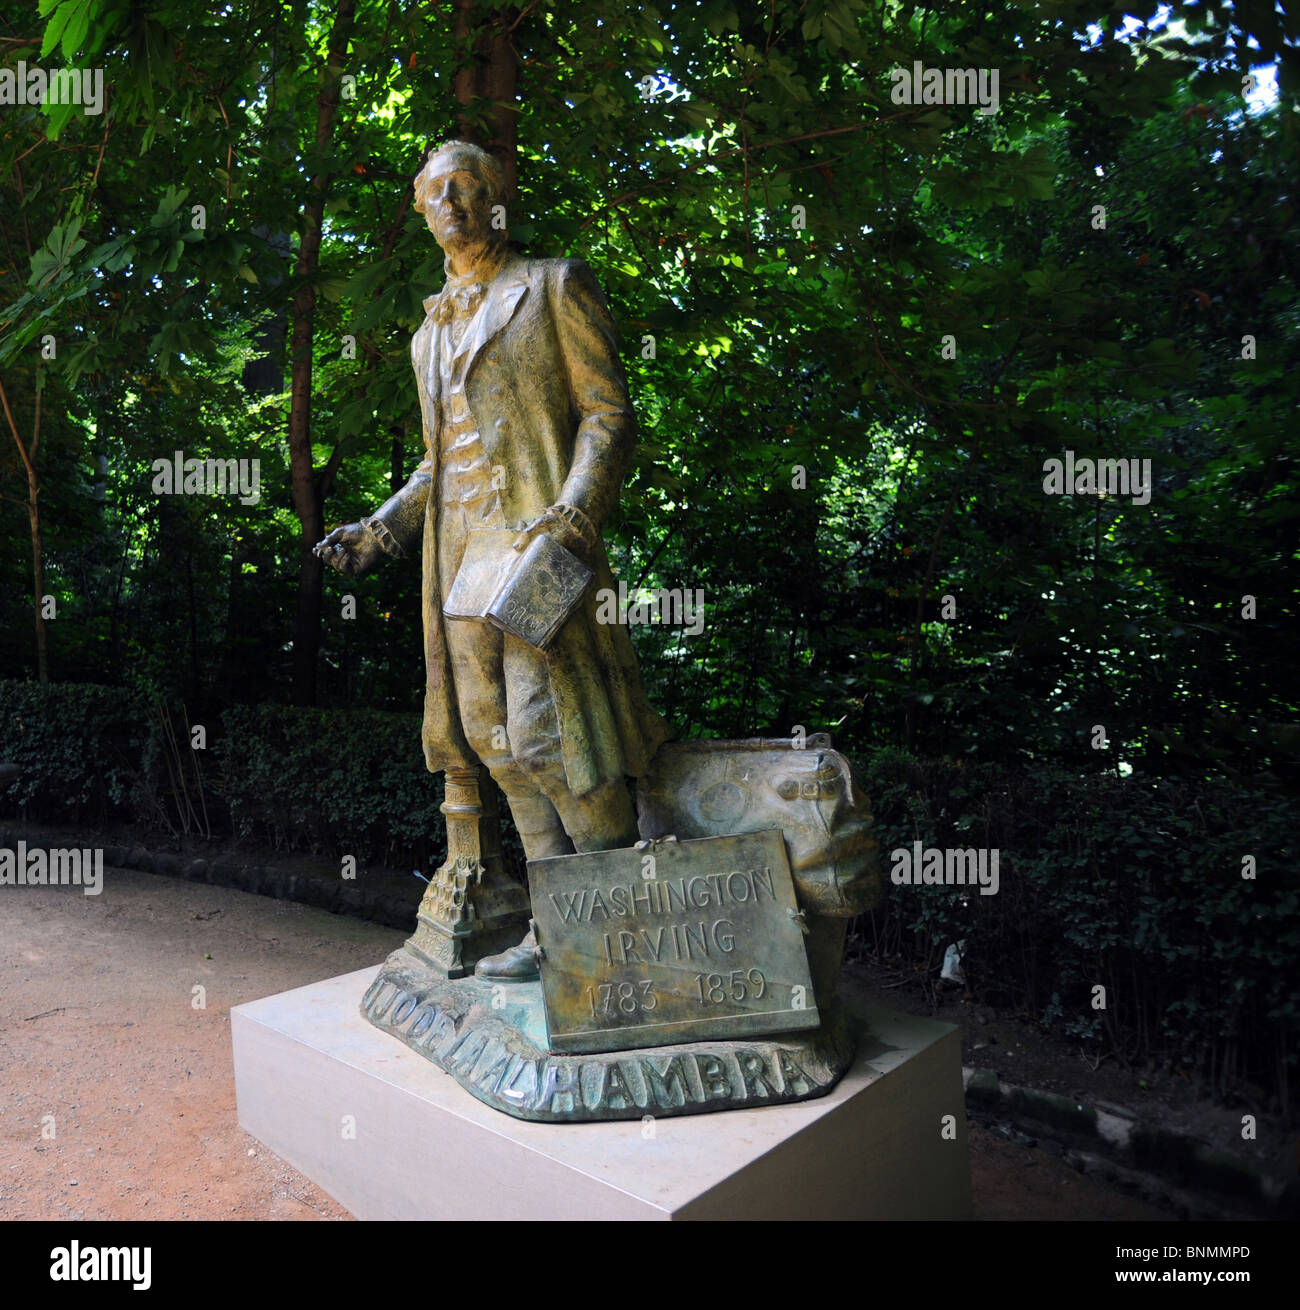 Statue of Washington Irving on the walk up to the Alhambra Palace, he is famous for writing the Tales of the Alhambra - Stock Image